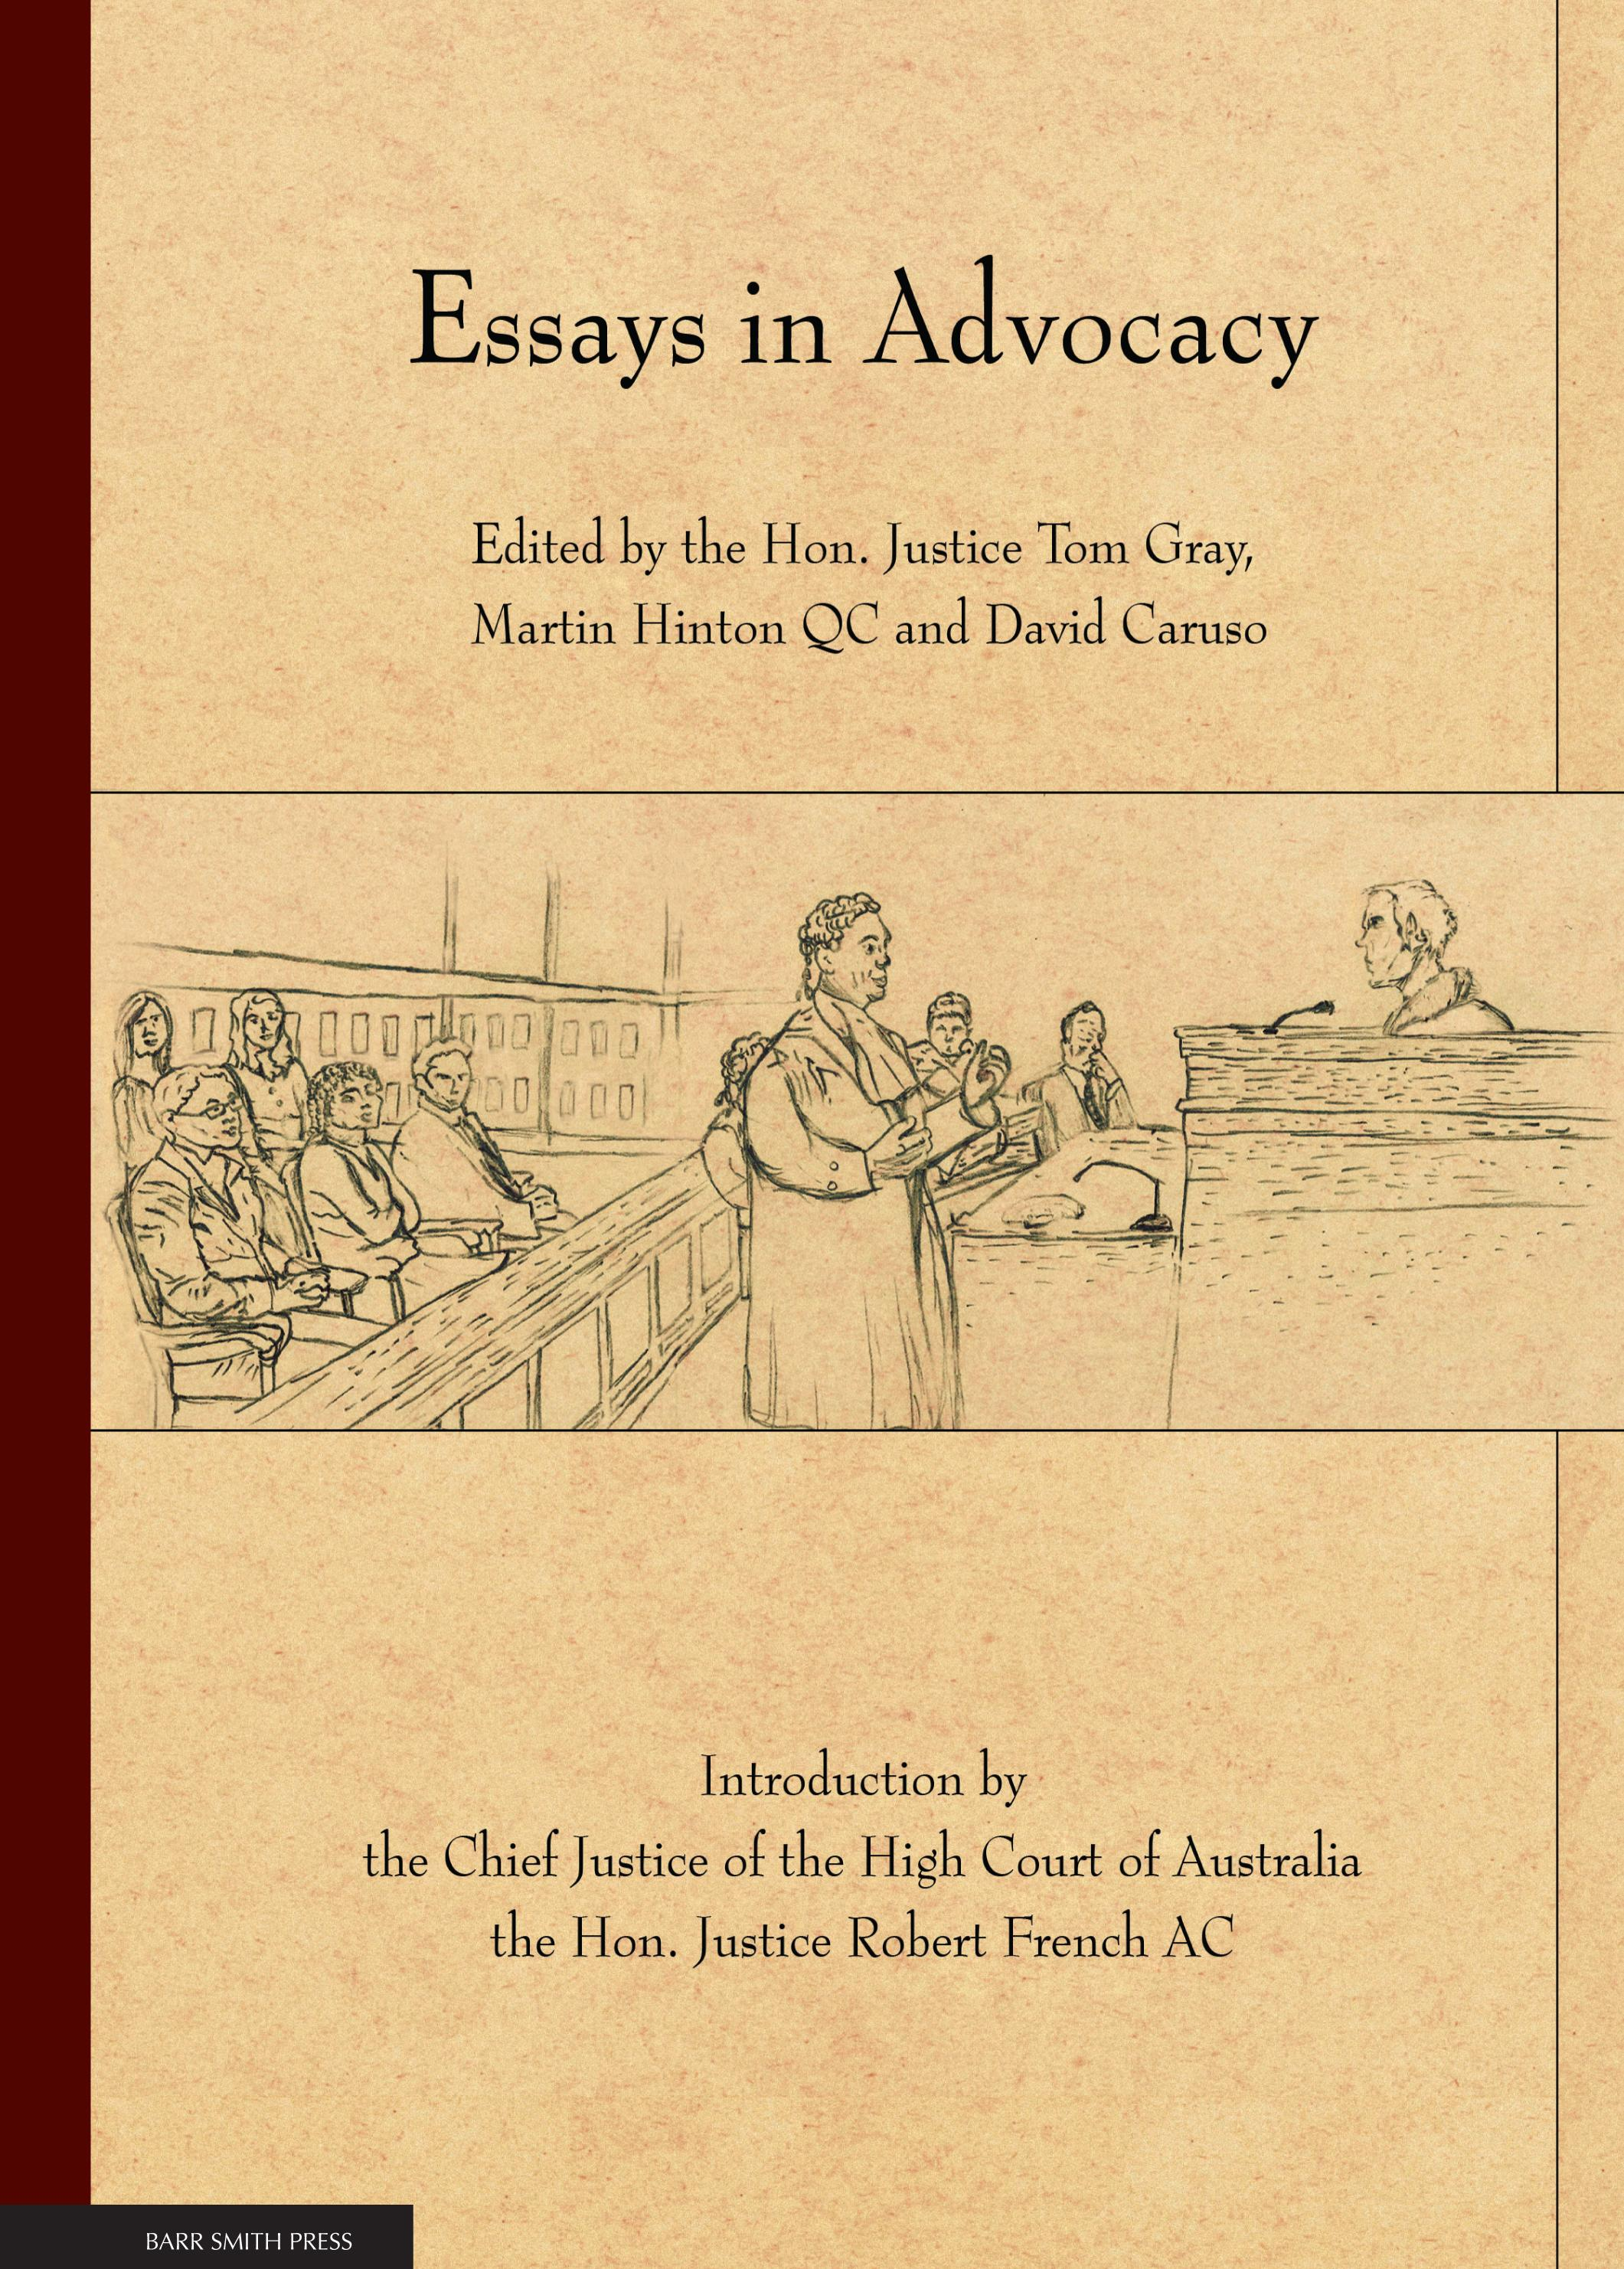 Essays in Advocacy cover